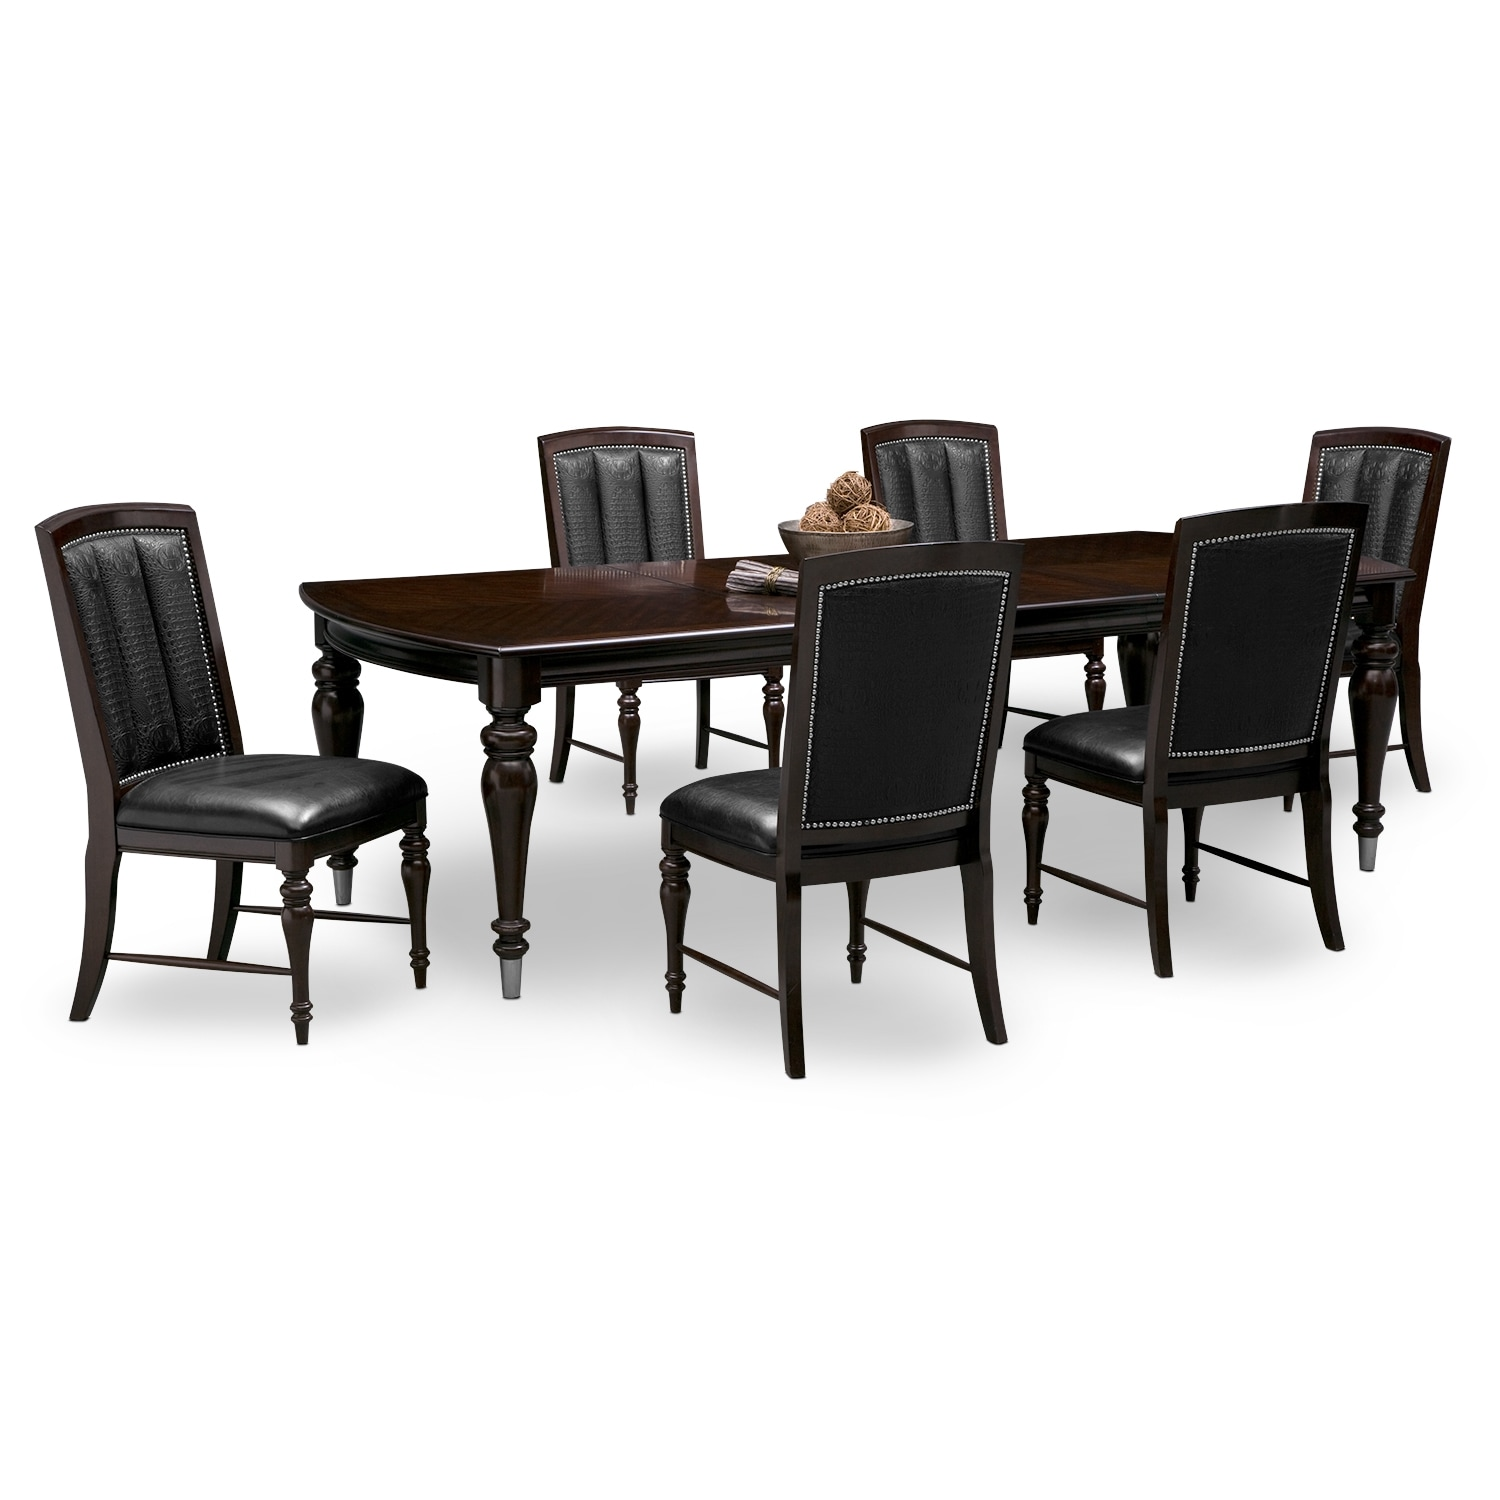 Dining Room Furniture   Esquire Table And 6 Chairs   Cherry